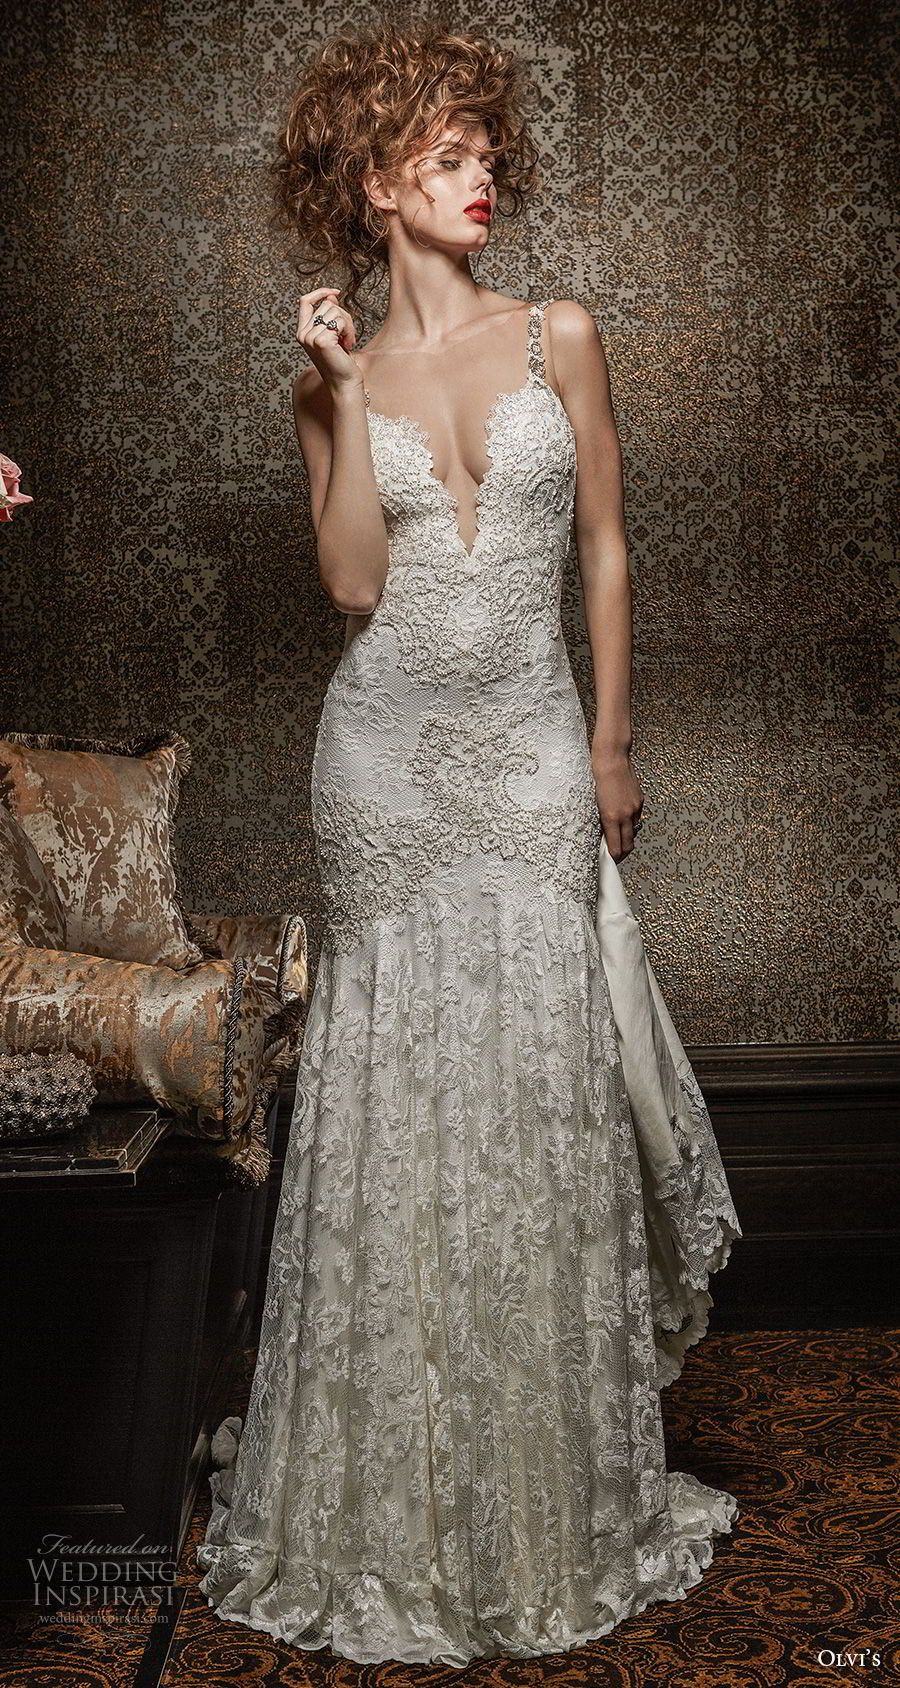 Drop waist a line wedding dress  Olvius  Wedding Dresses u ucRoyal Romanceud Bridal Collections in